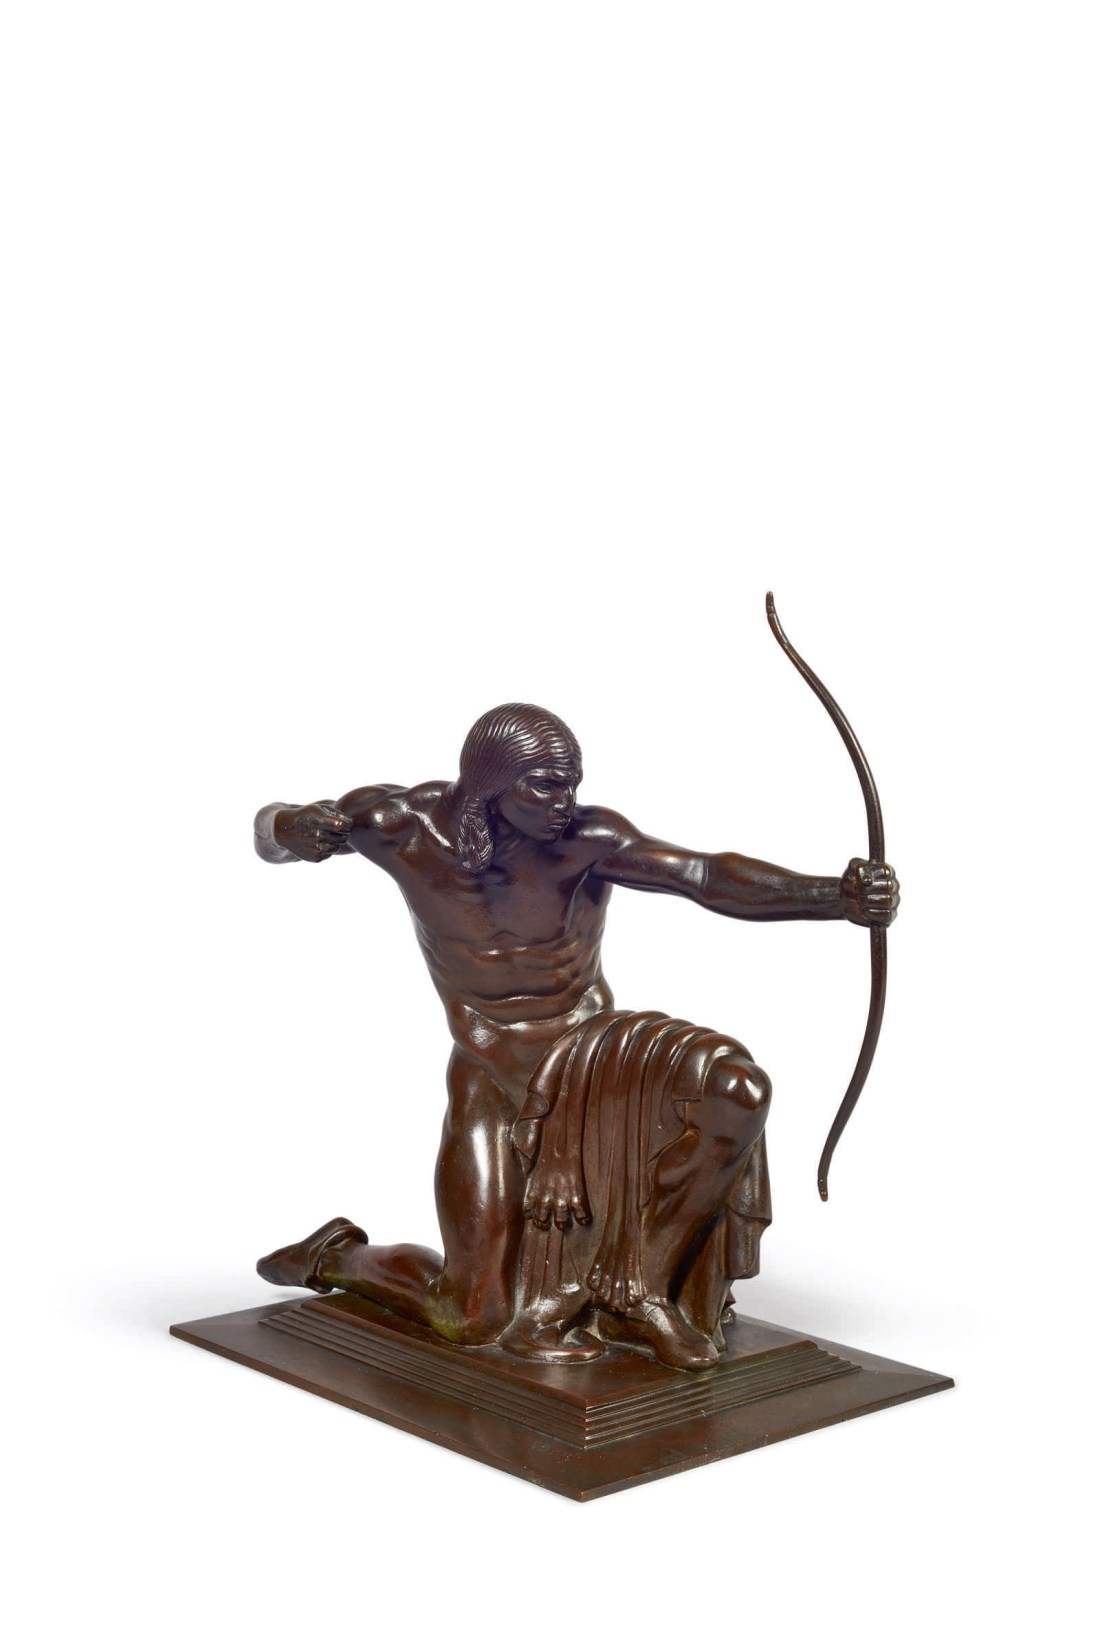 Indian Hunter, a 1914 bronze by Paul Manship, depicts a Native American down on one knee, pulling back the string of his bow. His face is serious and focused.